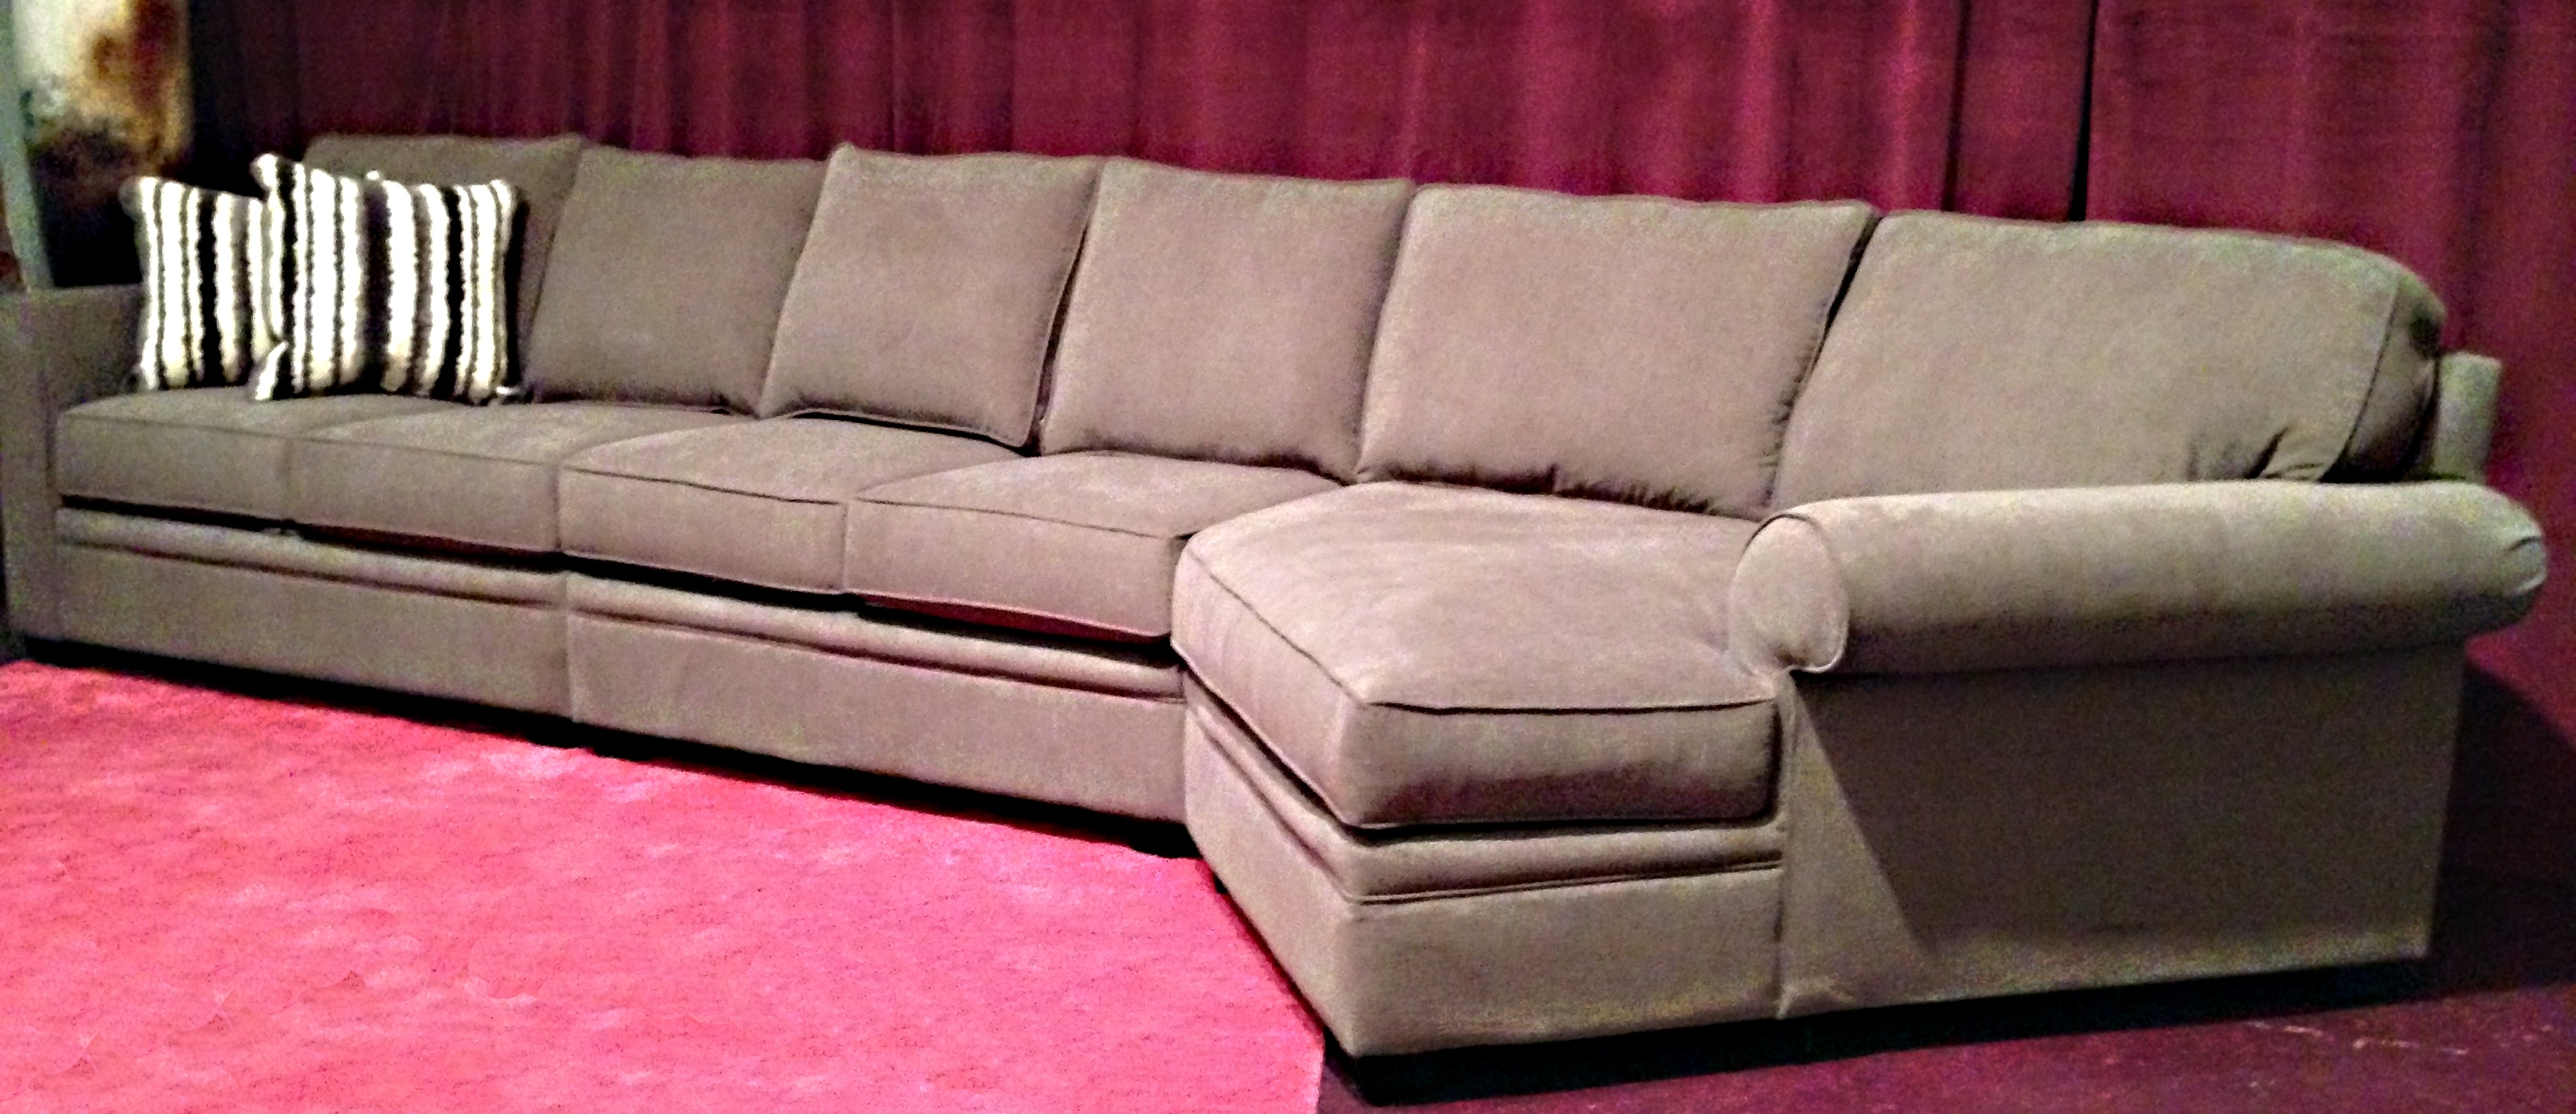 Long Couches With Chaise With 2017 Epic Cuddler Sofa 20 For Your Modern Sofa Ideas With Cuddler Sofa (View 14 of 15)